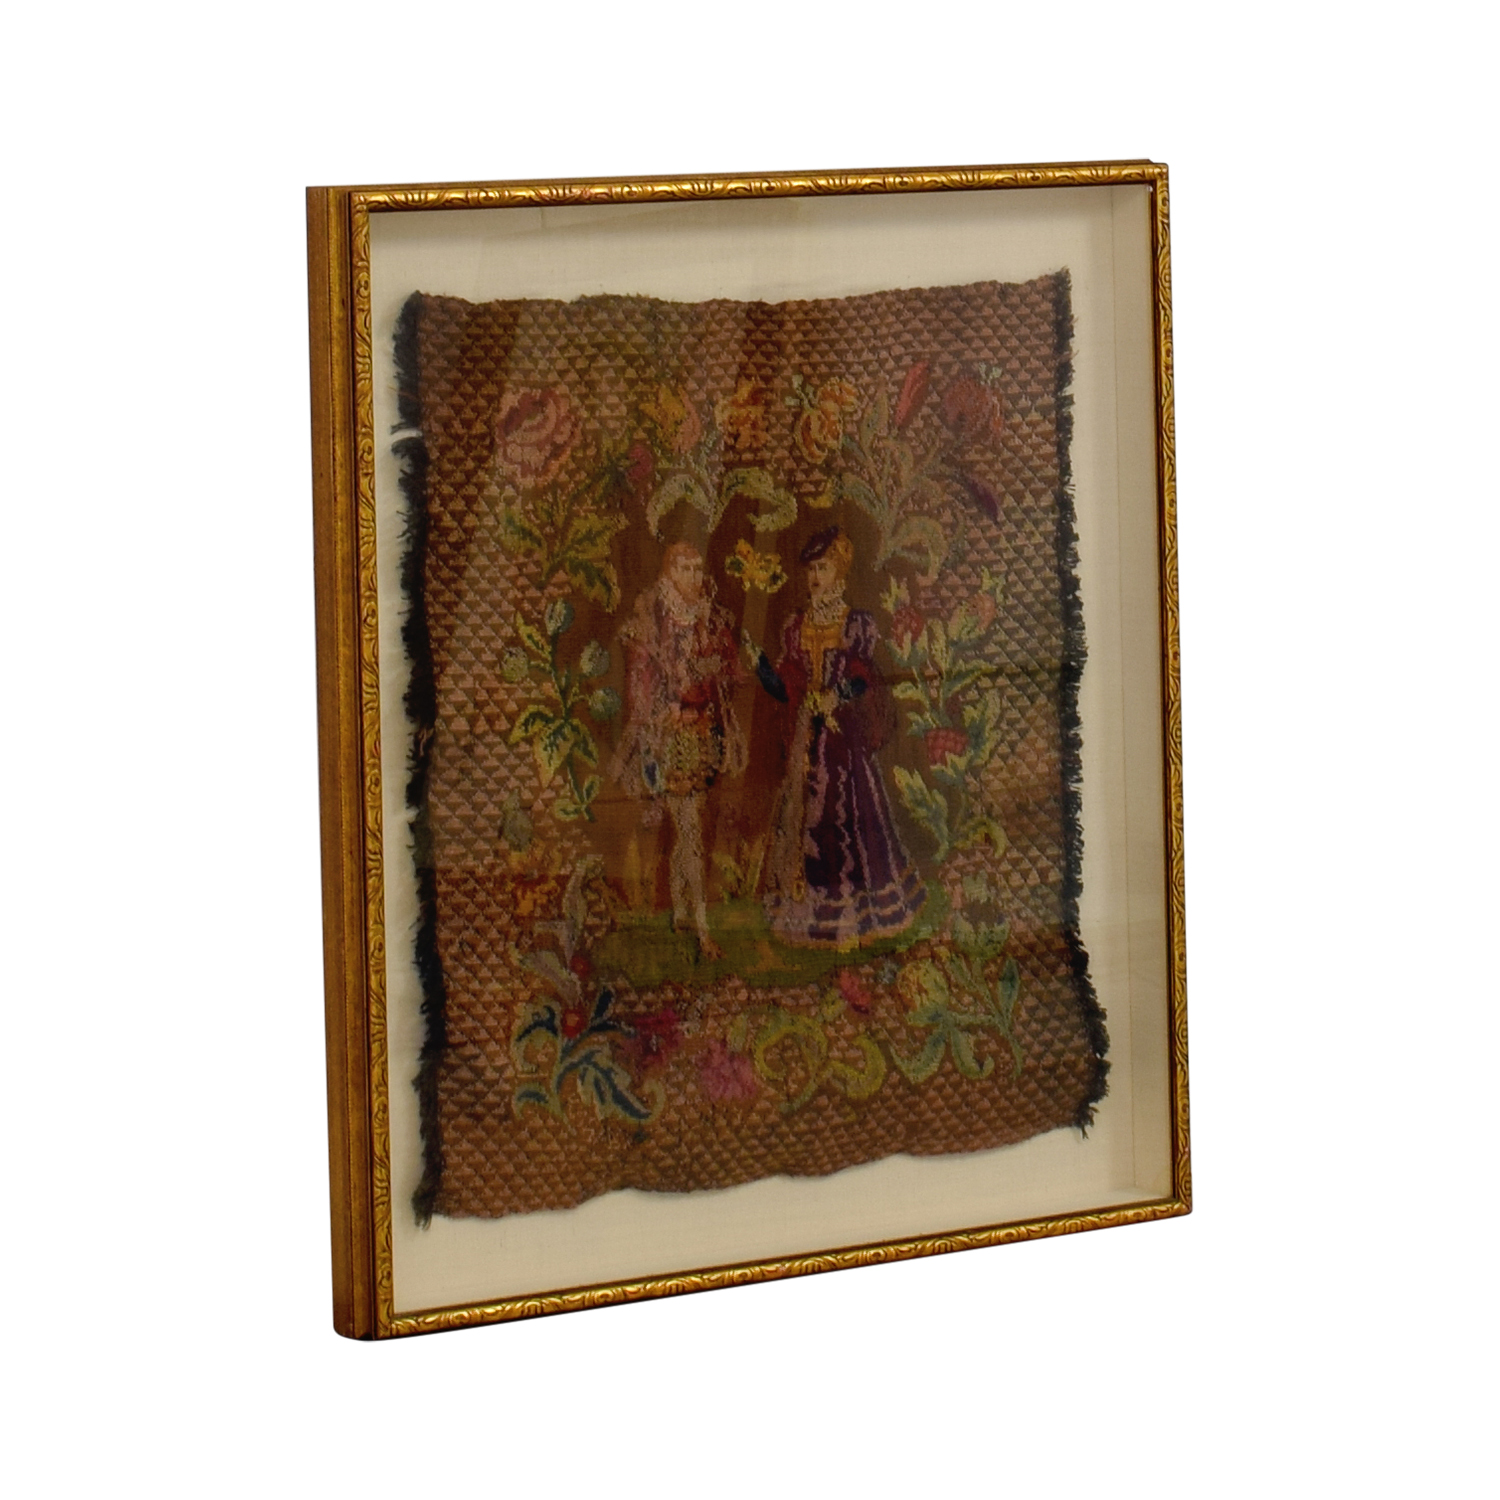 buy ABC Carpet and Home Framed Embroidered Tapestry of Man and Woman ABC Carpet and Home Wall Art